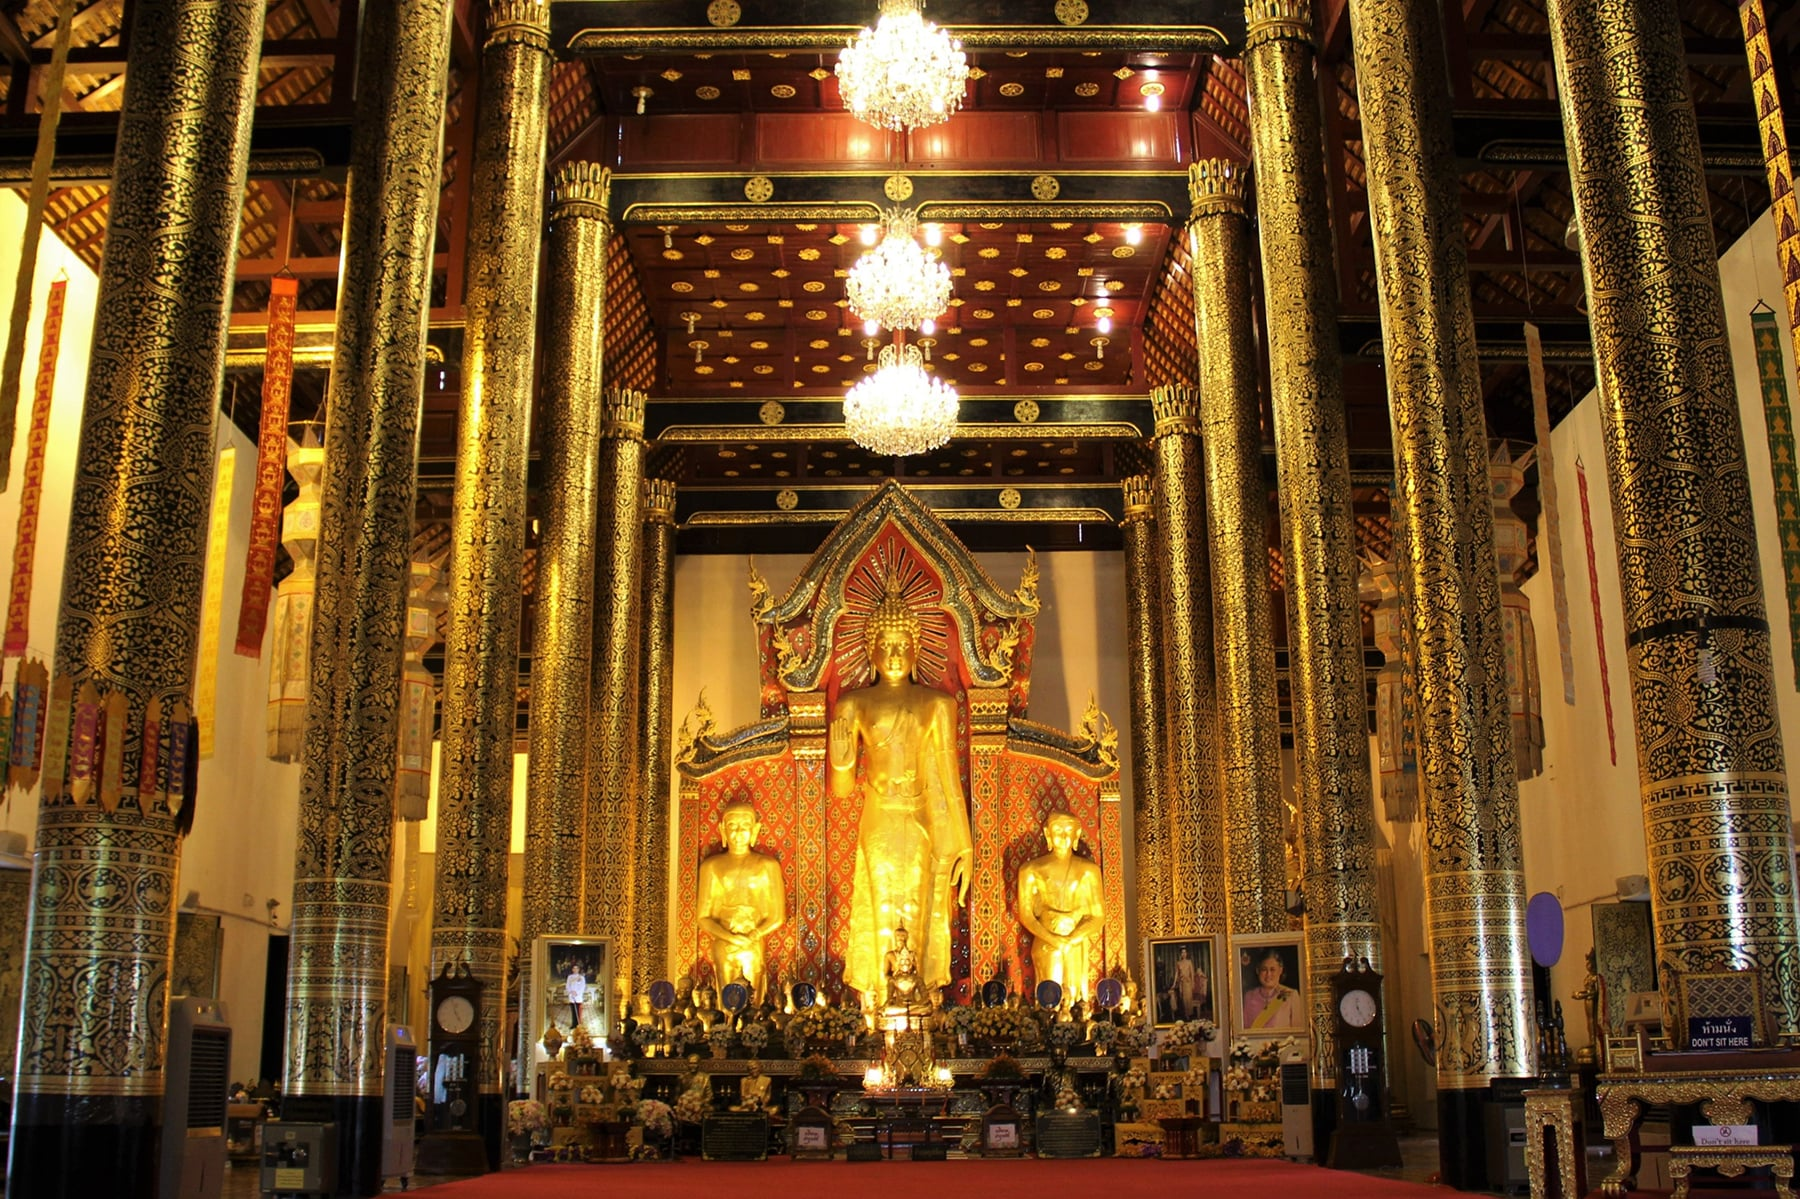 Inside the ordination hall in the Wat Chedi Luang in Chiang Mai